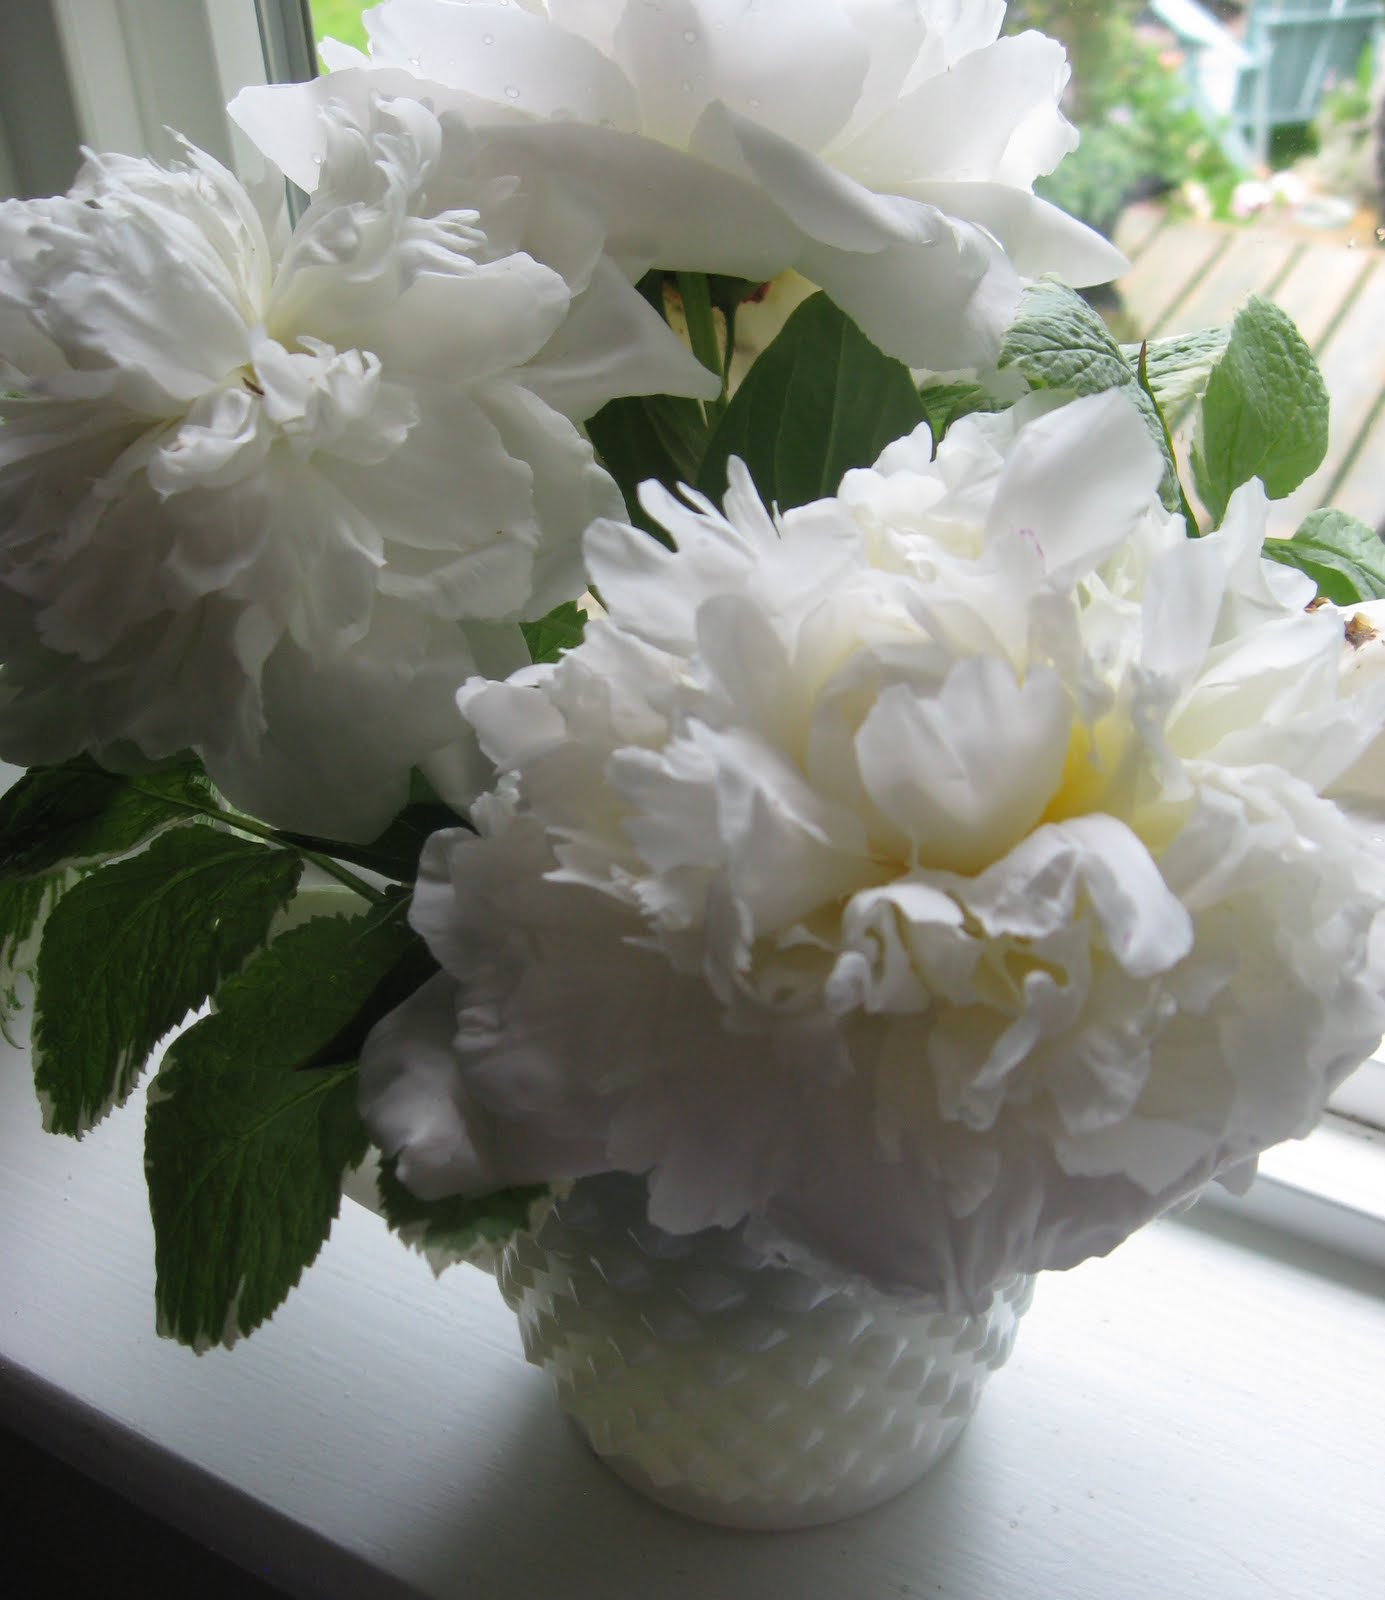 Good morning tinkerhouse trading company i did get to pick my very first flowers this morning white peonies mightylinksfo